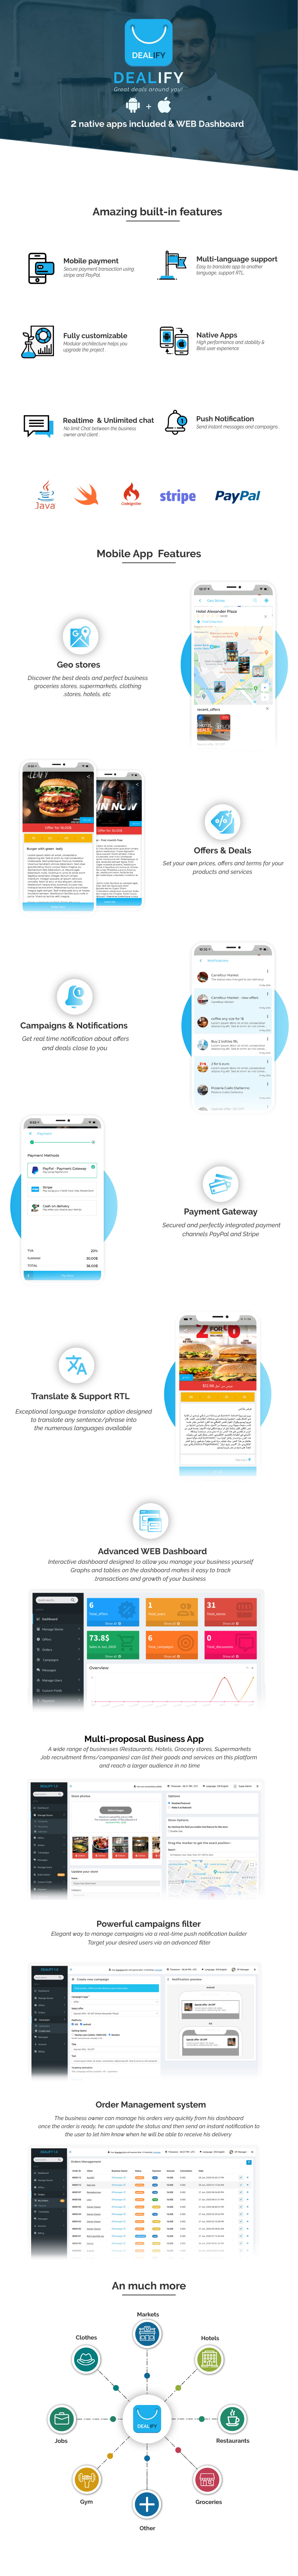 Dealify - Stores, Offers, Deals & Advanced Order System - Native Apps iOS & Android - 1